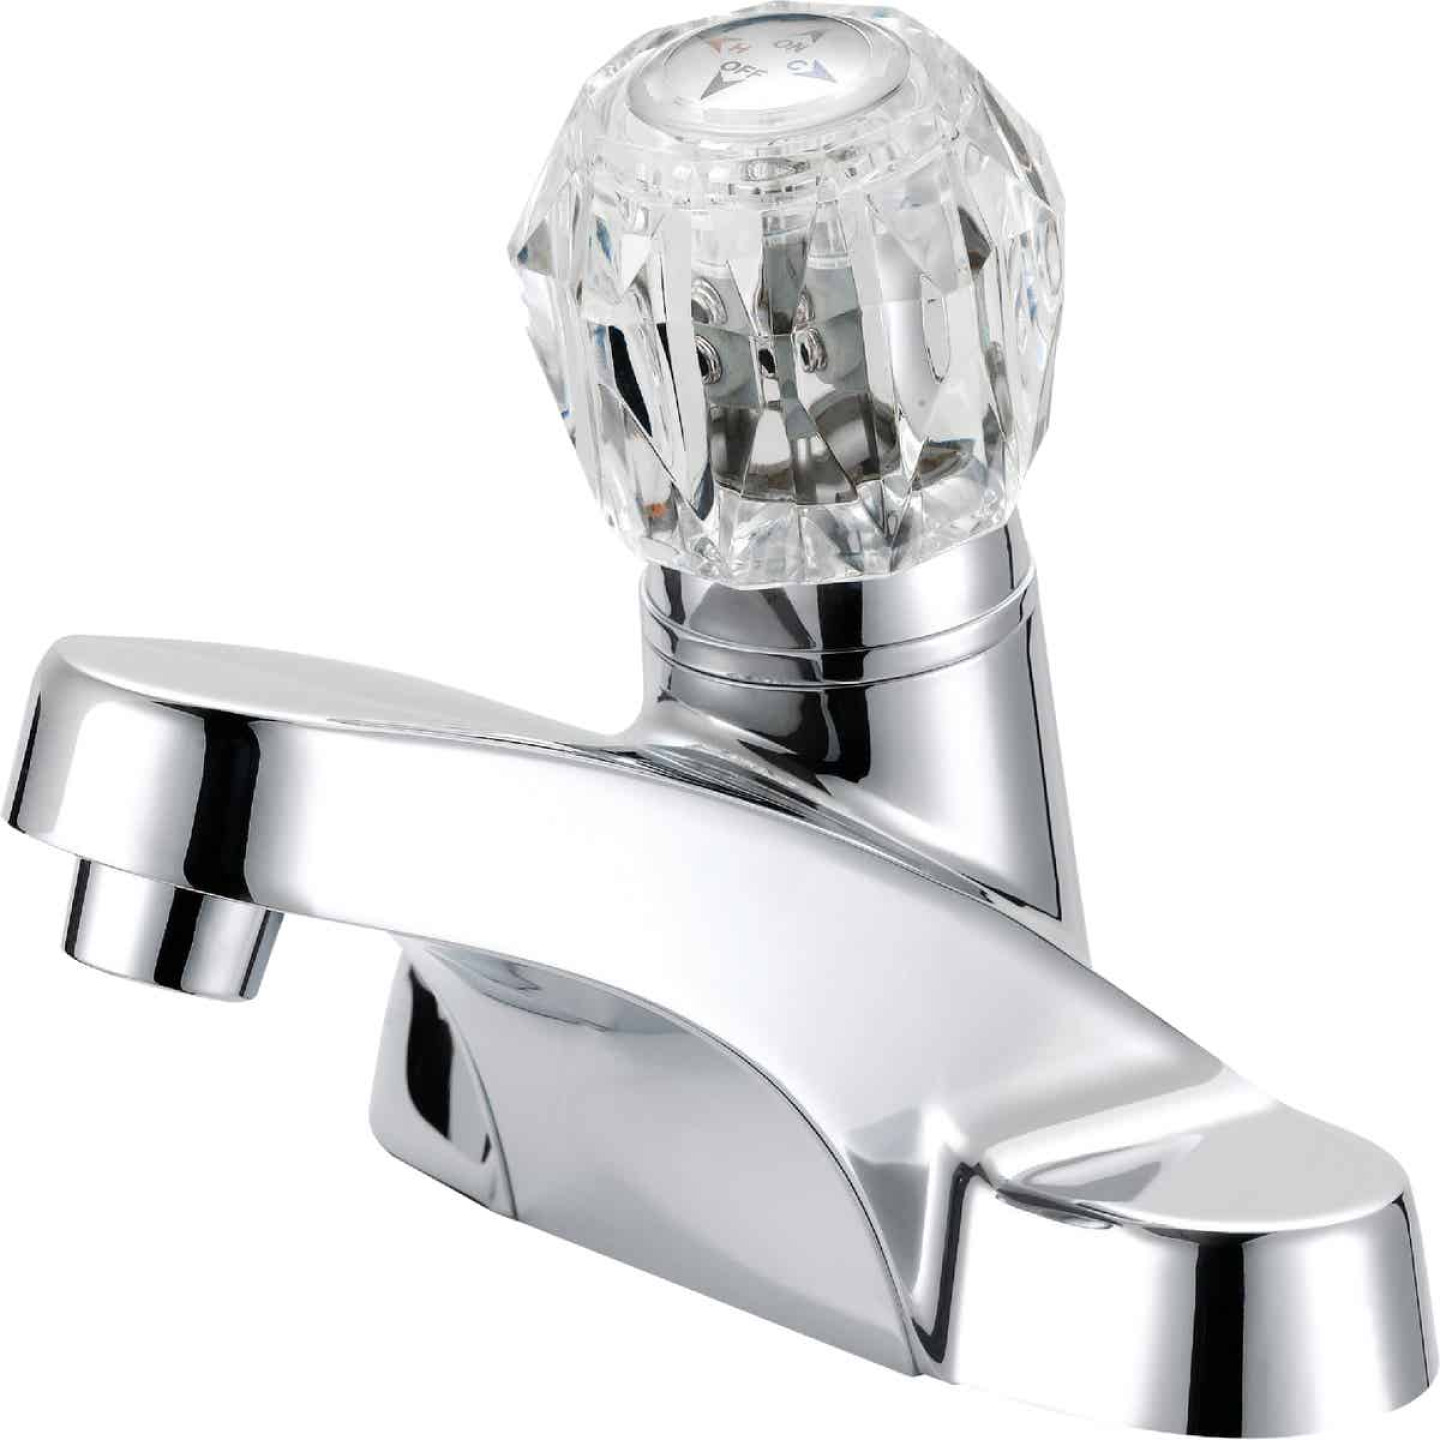 Home Impressions Chrome 1-Handle Knob 4 In. Centerset Bathroom Faucet Image 1